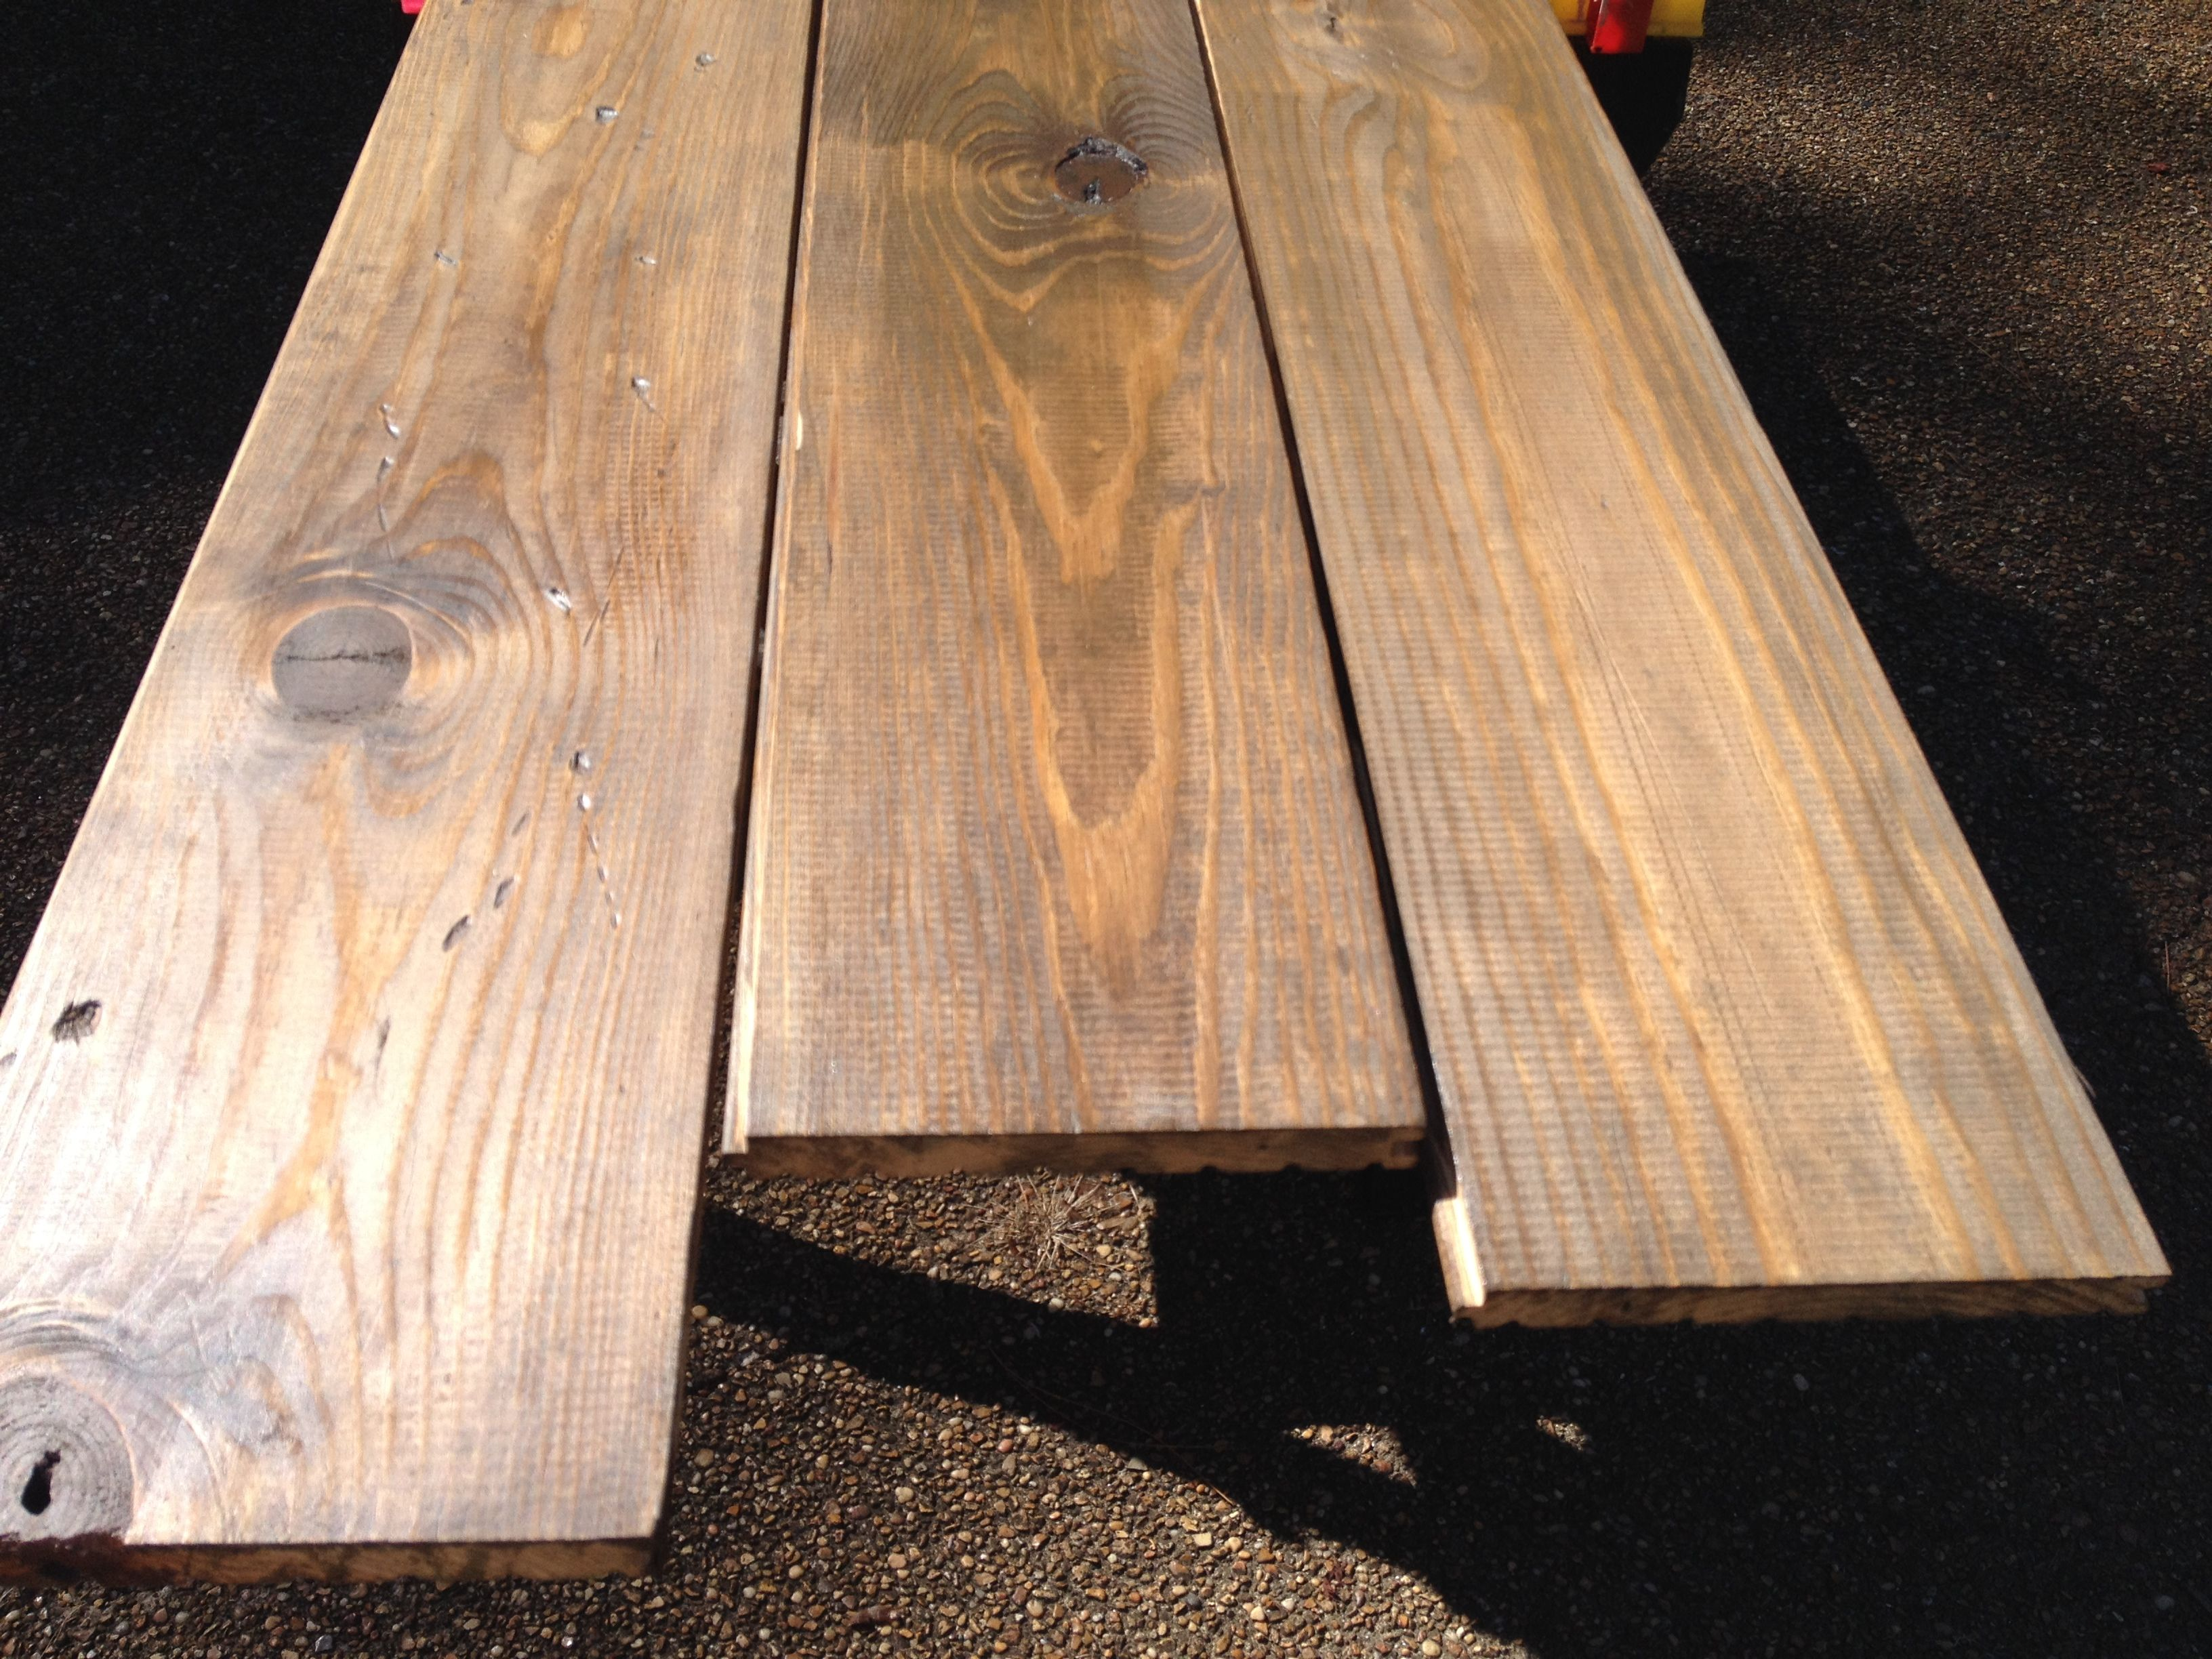 Clic Dark Stained Southern Yellow Pine These Have Pre Conditioner And Two Coats Of Stain